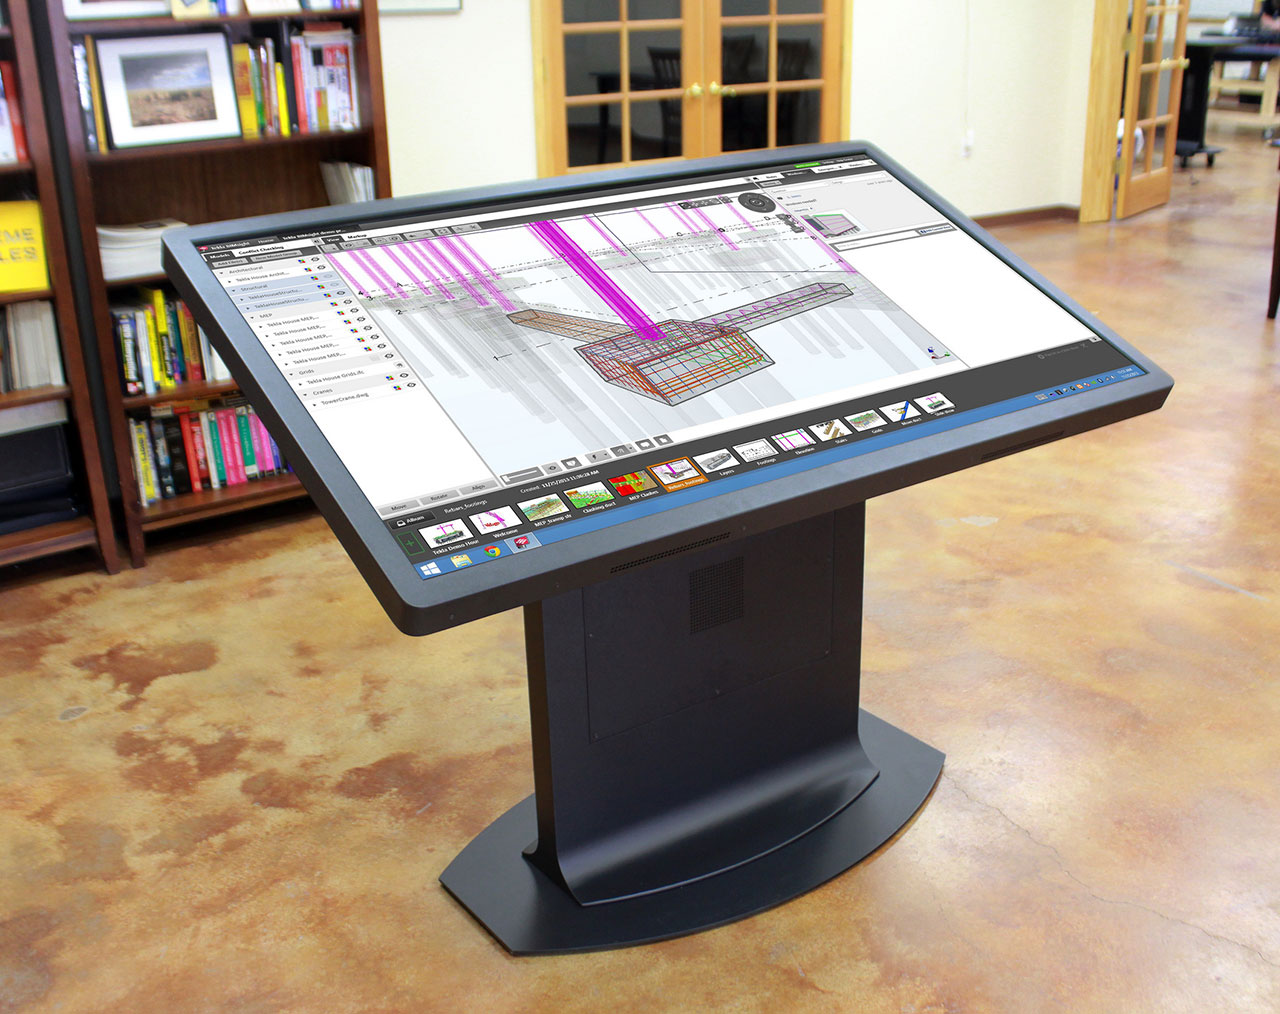 Ideum Is Excited To Announce Our Take On The Classic Mechanical Desk With Platform Multitouch Drafting Table